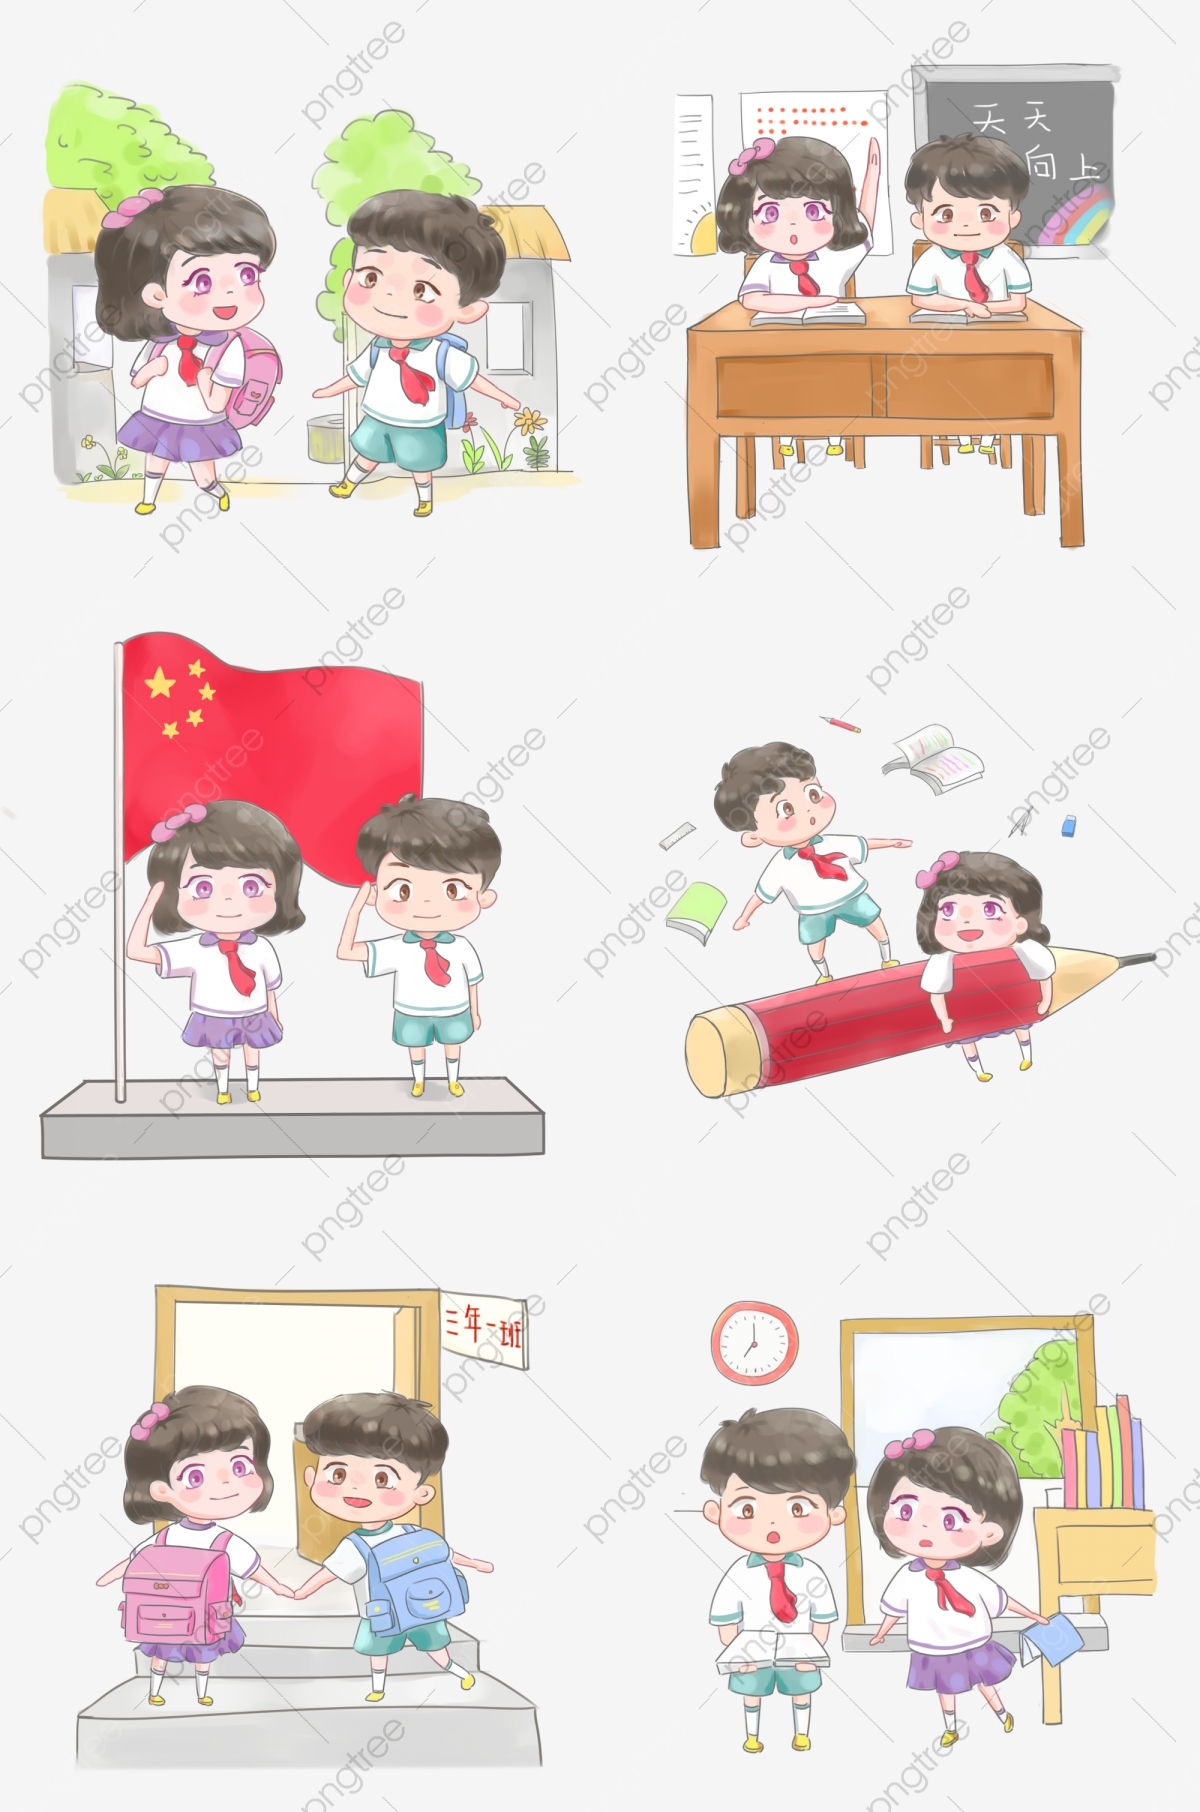 Classroom Clipart Png Images Vector And Psd Files Free Download On Pngtree